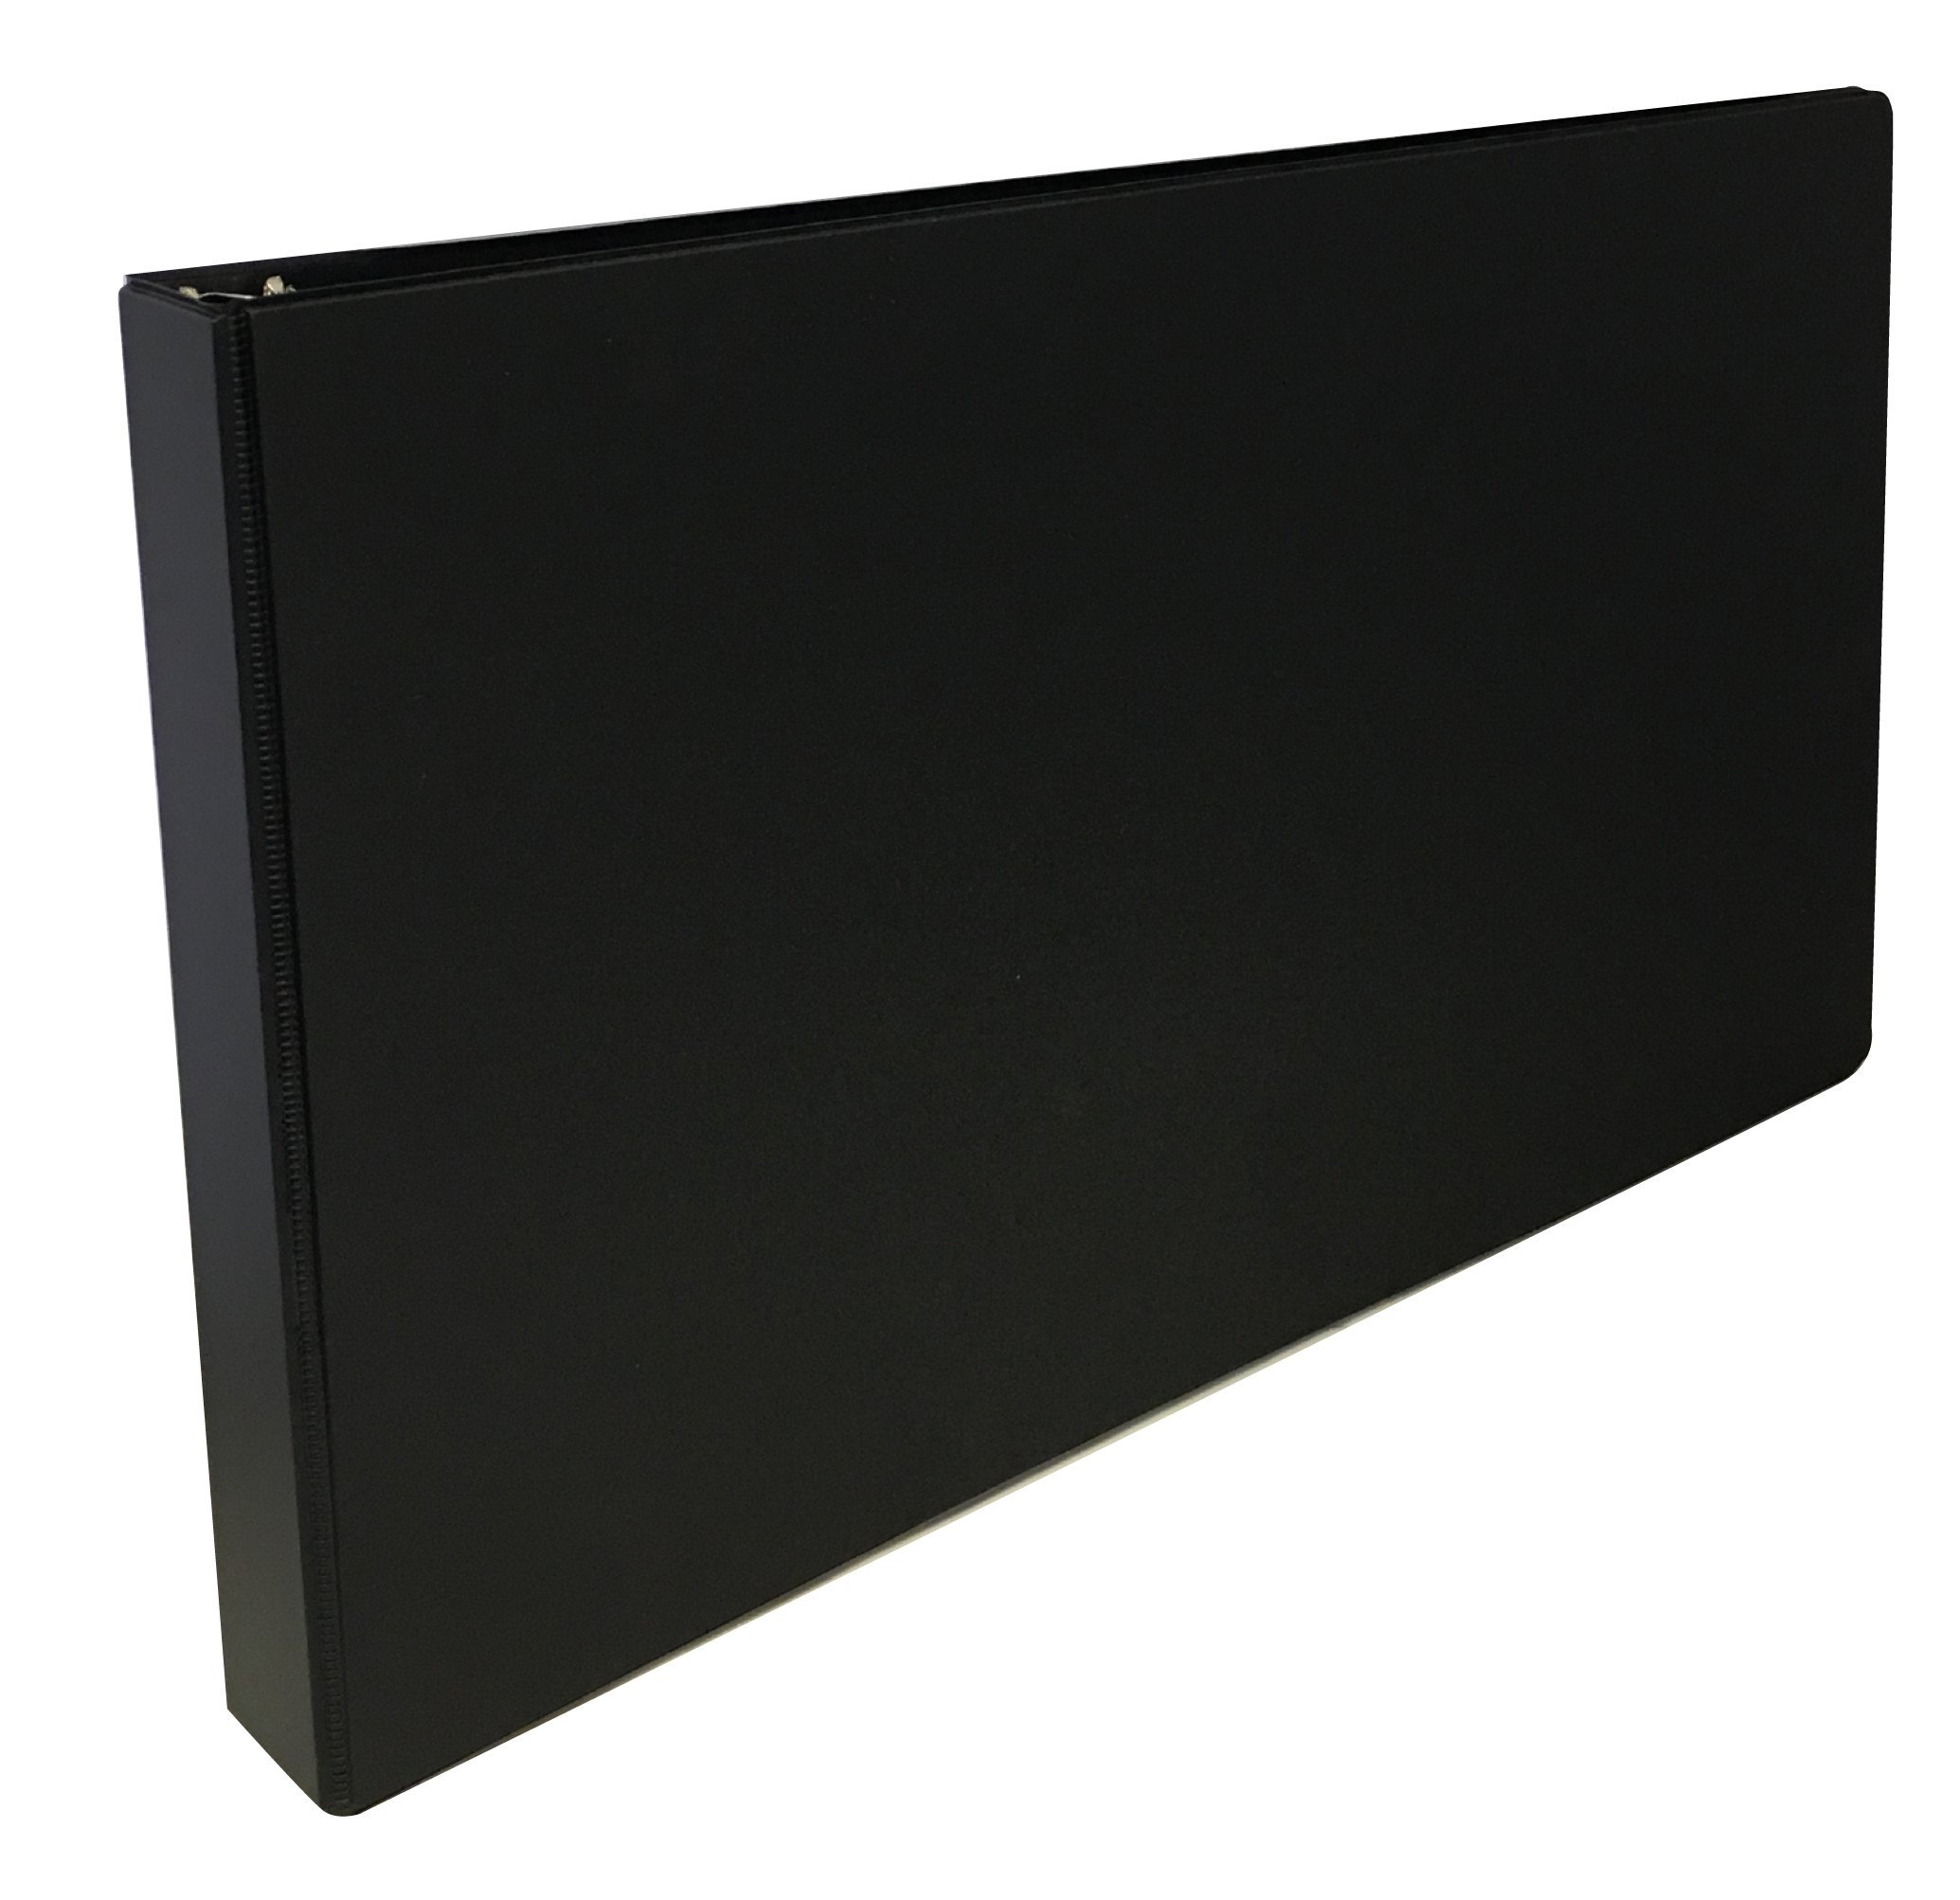 3 Ring Binders, 1-inch Slant D-Rings with Interior Pockets, Black by Ring Binder Depot